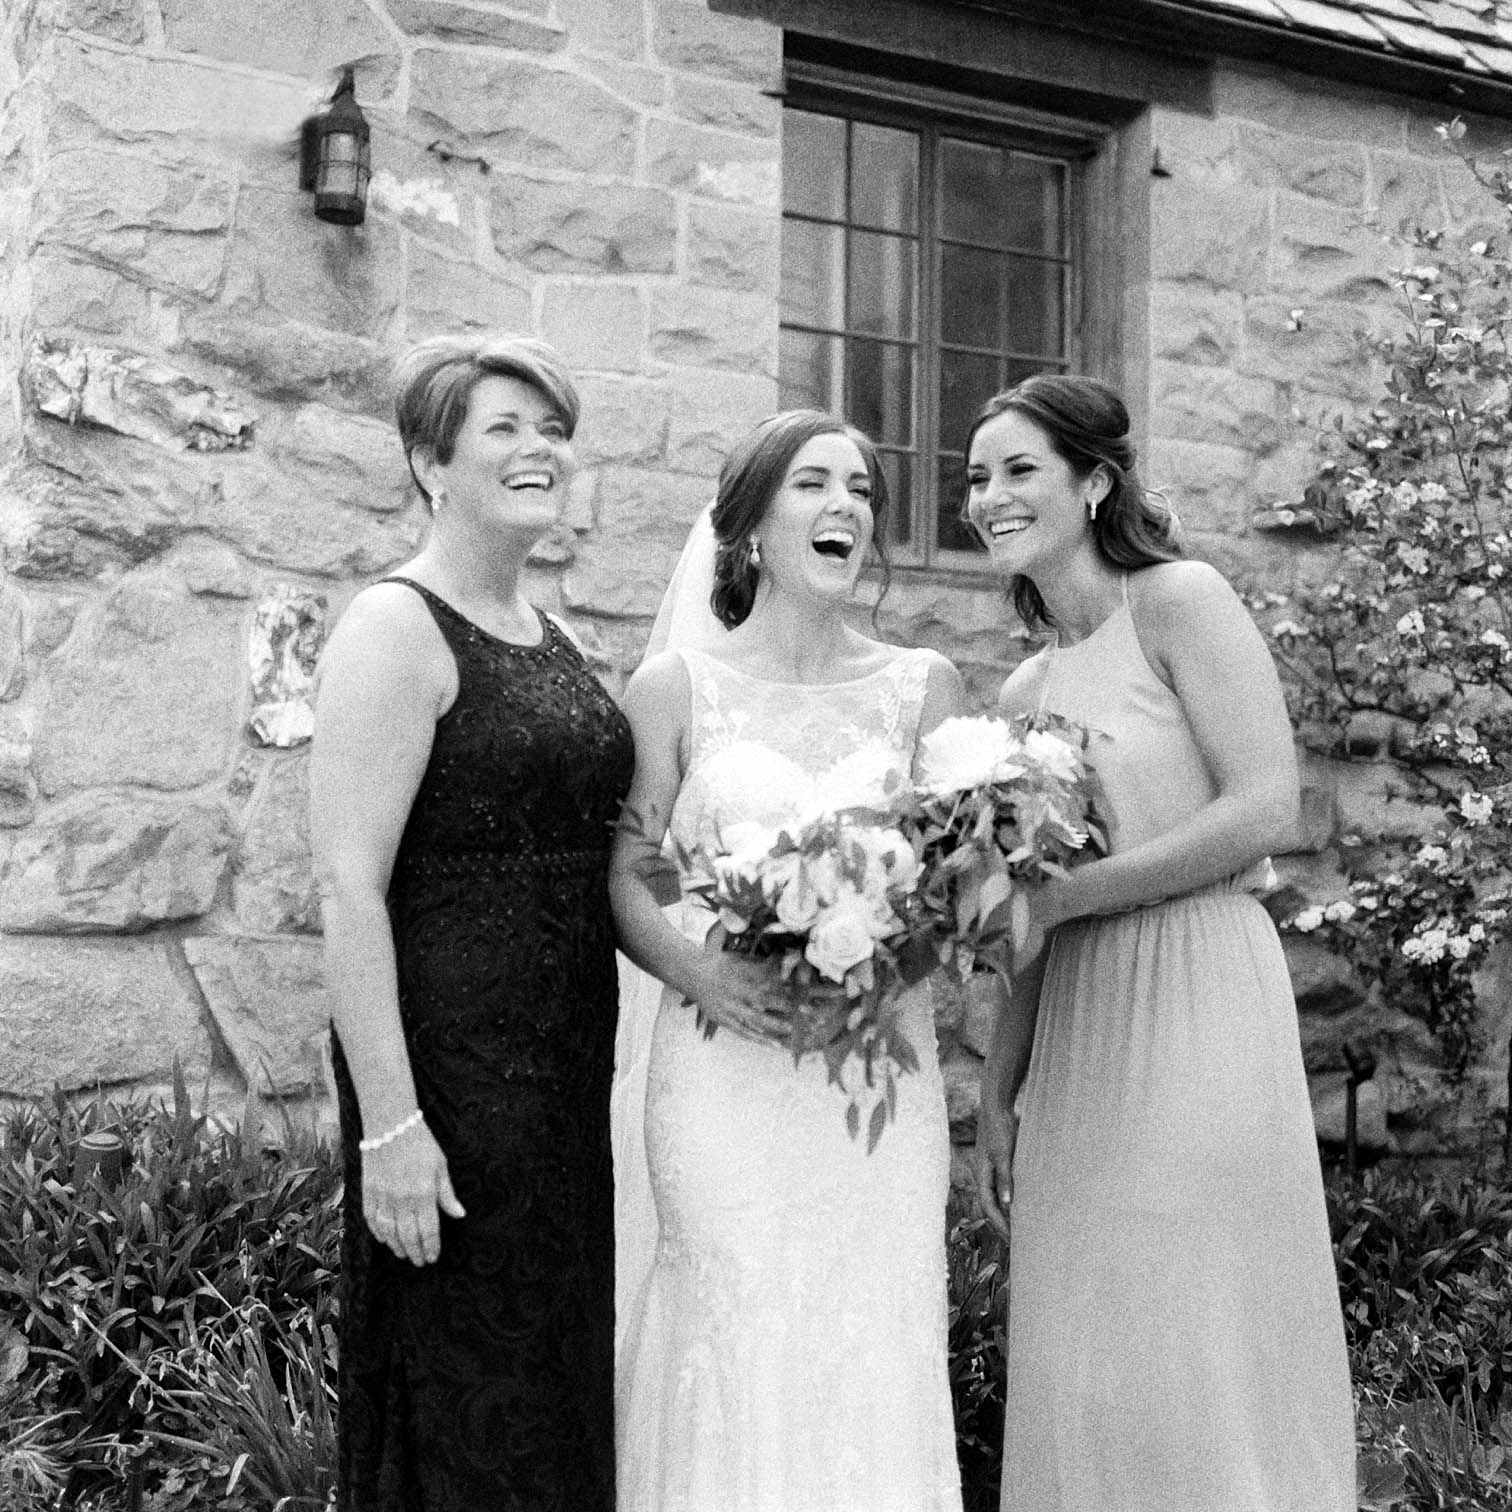 Family Portraits, First Kiss, Mountain Weddings, Danielle DeFiore Photographer, Bride and Groom Portraits, Colorado Wedding Photographers, Castle Wedding, Classic Black Tie Wedding, Film Photographer, Colorado Weddings, Black and White Photography